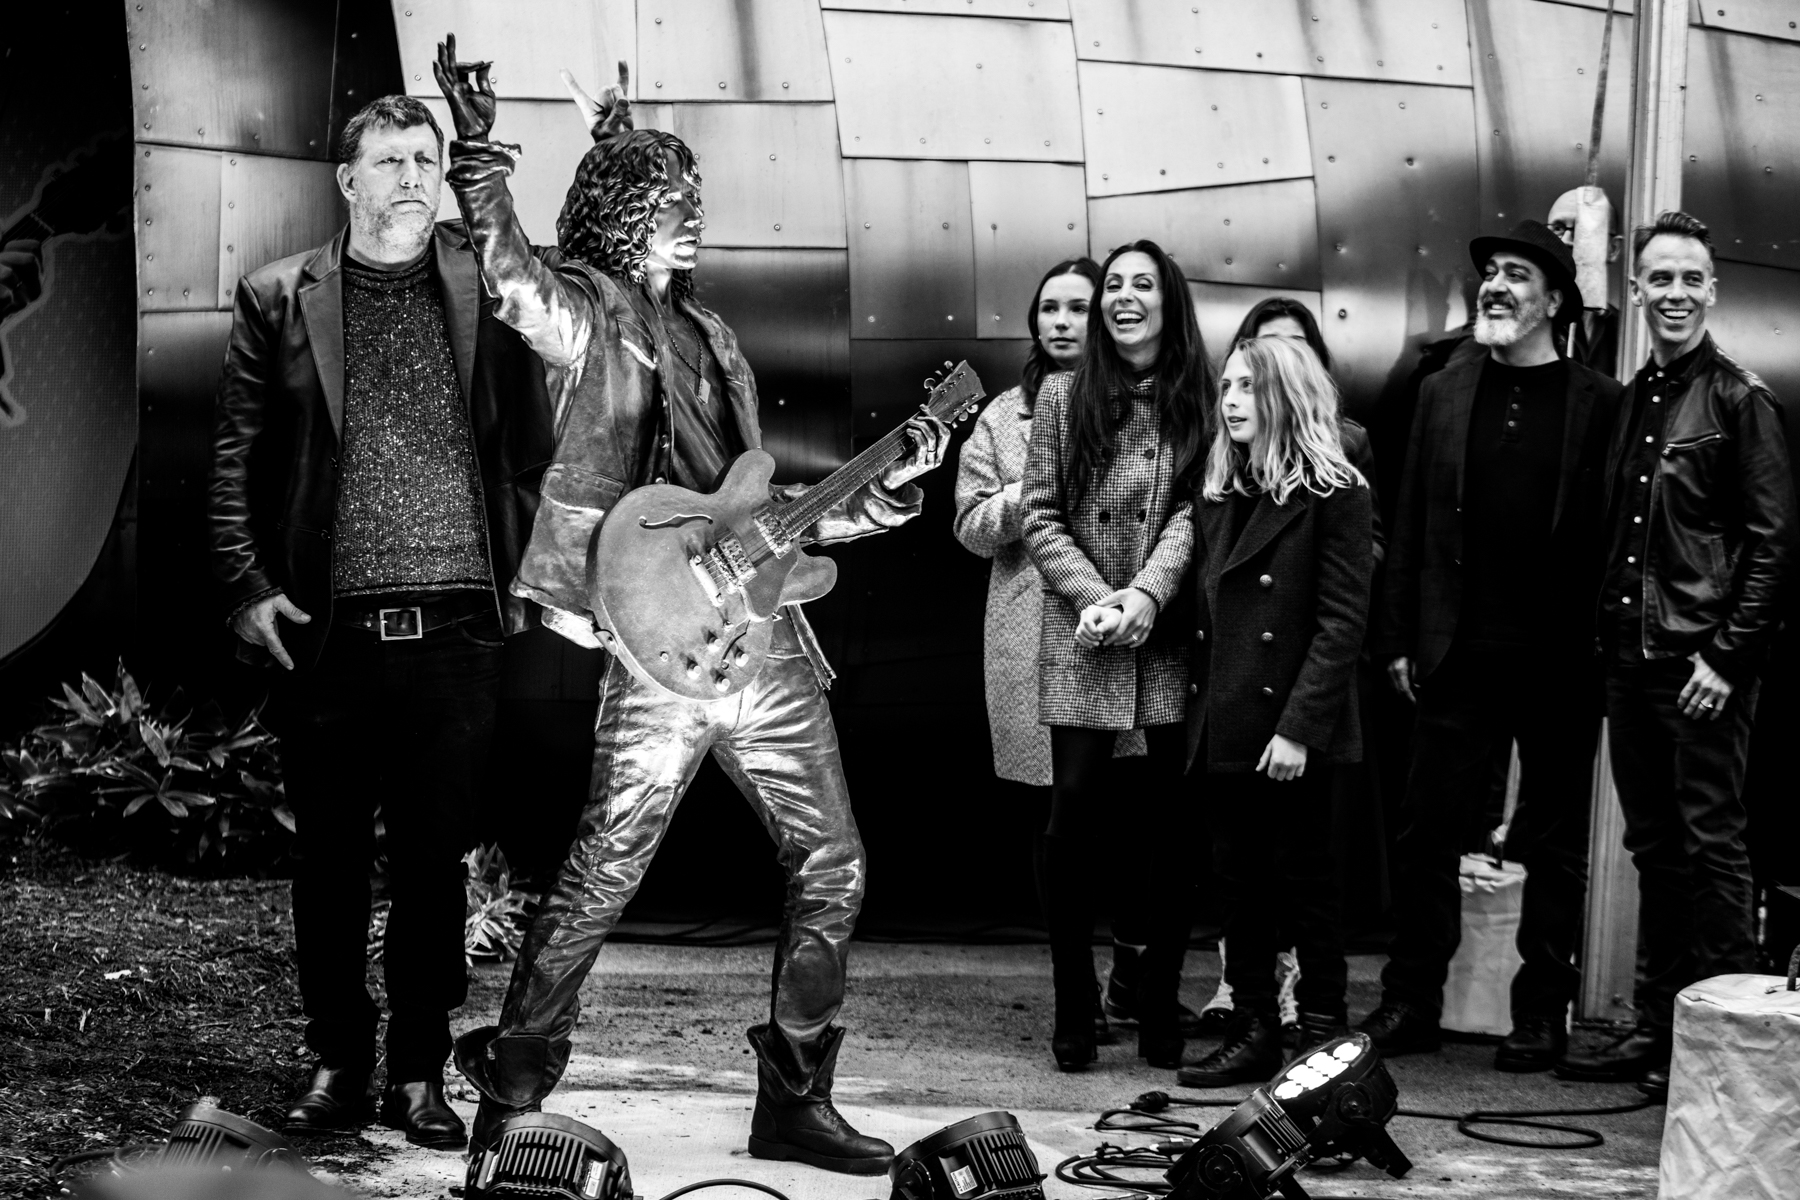 Throngs of rock fans attended the official unveiling of the commemorative statue of the late legend, Chris Cornell, yesterday evening at the Museum of Pop Culture. In attendance were Cornell's family, bandmates, Mayor Durkan and more (Image: Chona Kasinger / Seattle Refined).